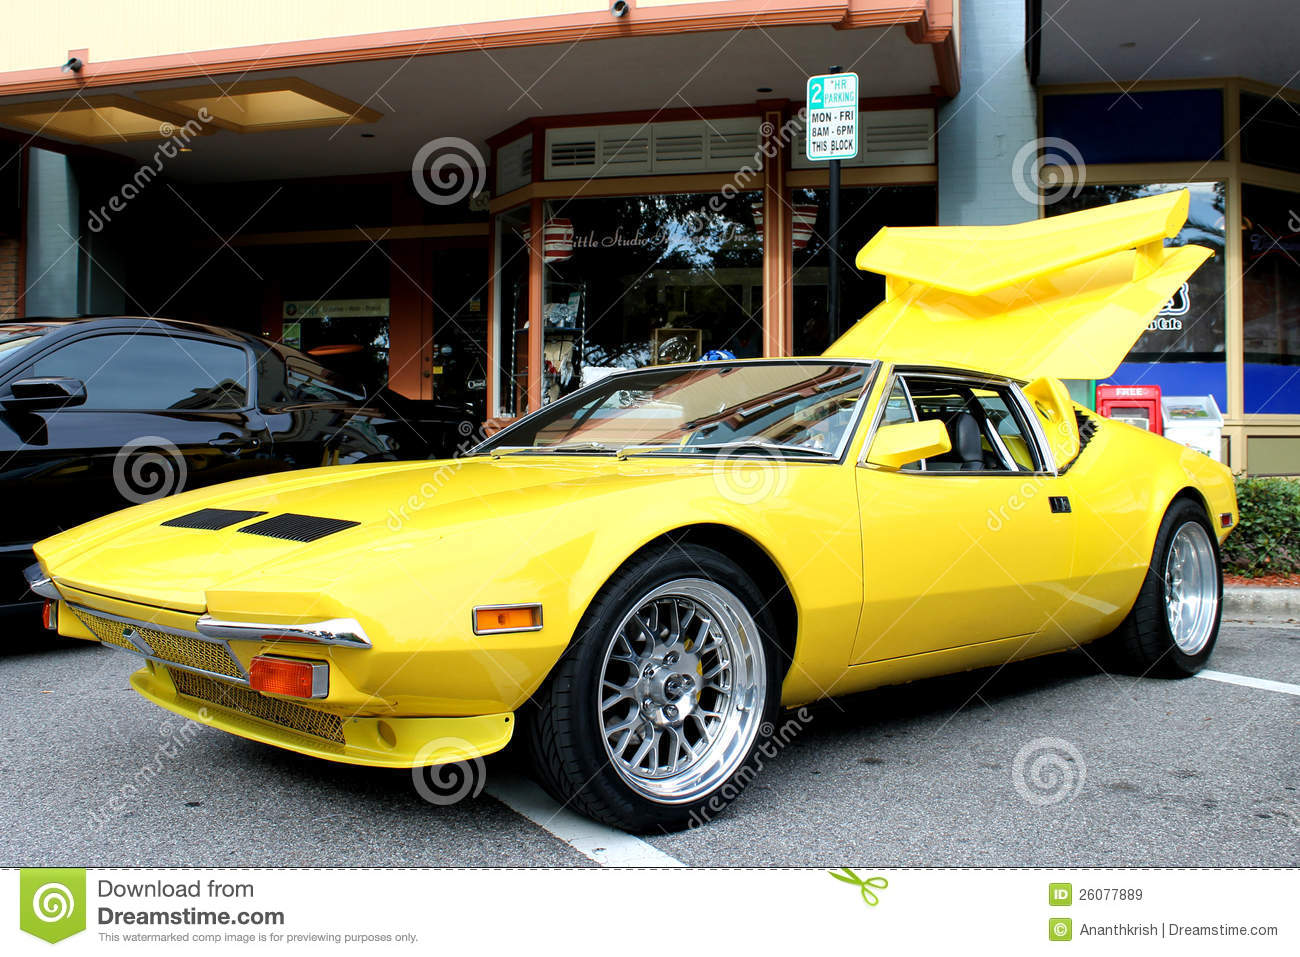 The old sports car stock image. Image of collection, coupe - 26077889